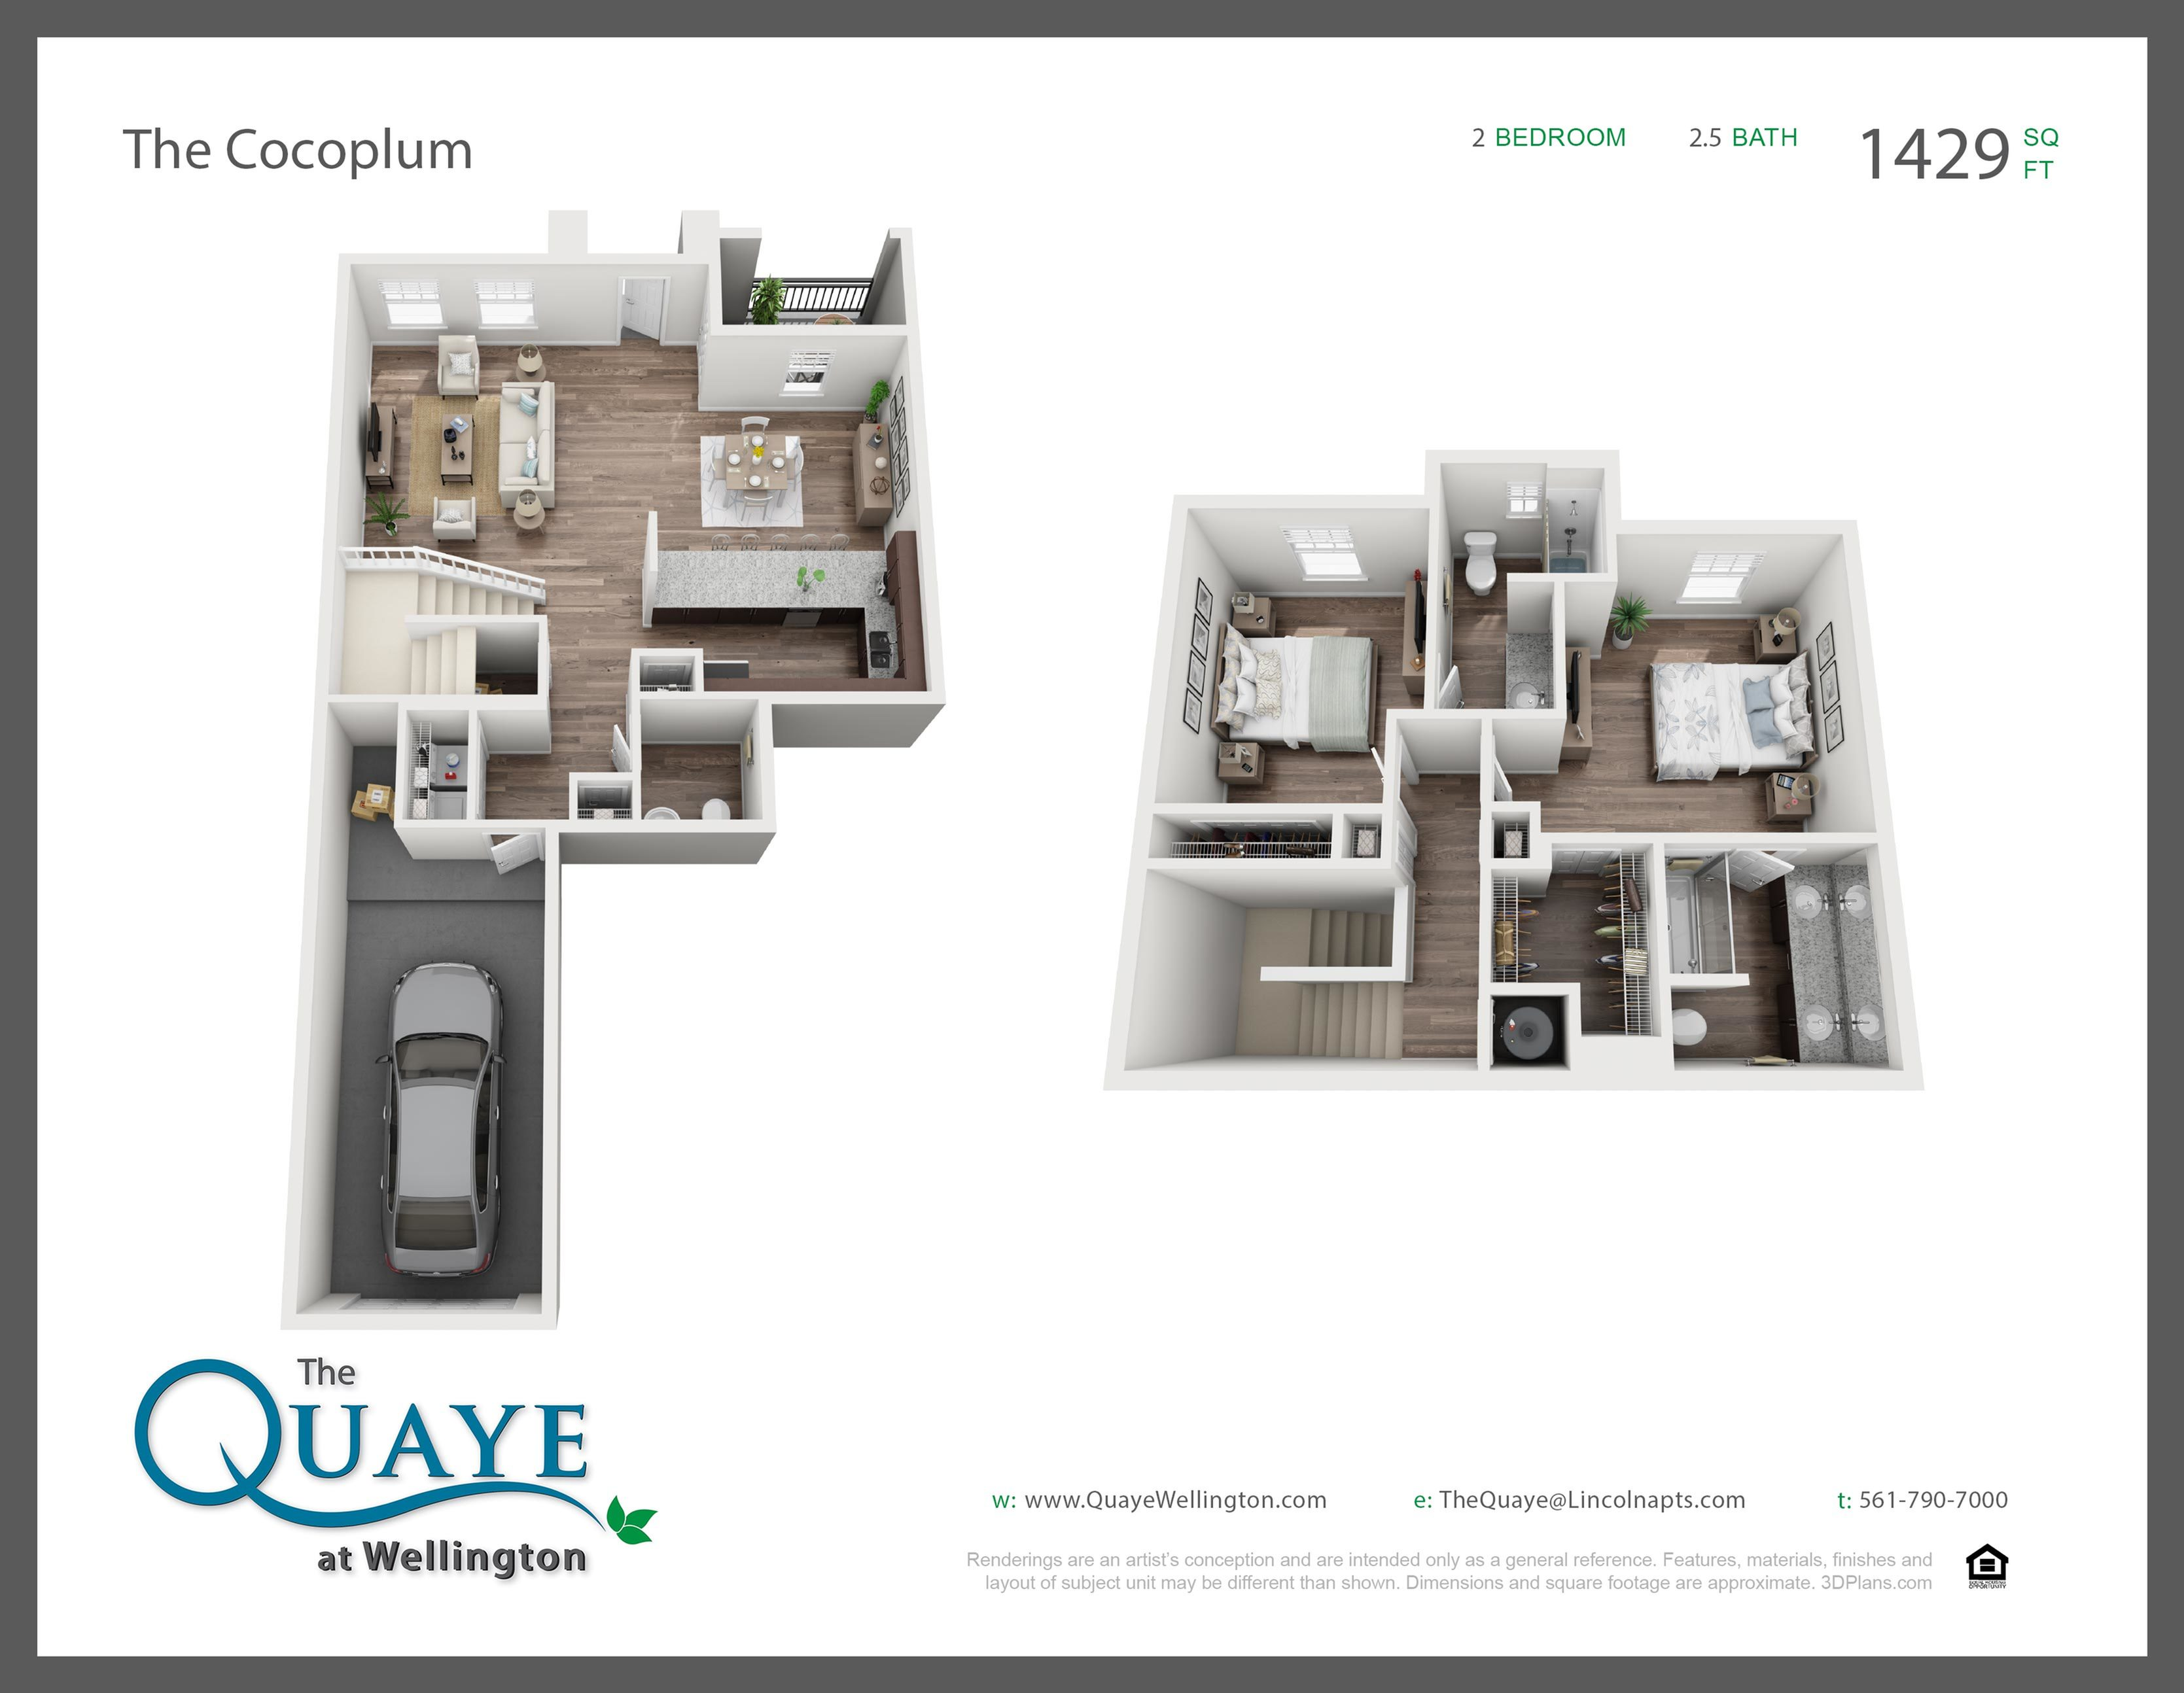 Cocoplum two bedroom two and a half bathroom town home with single car garage 3D floor plan, 1,429 sq. ft.